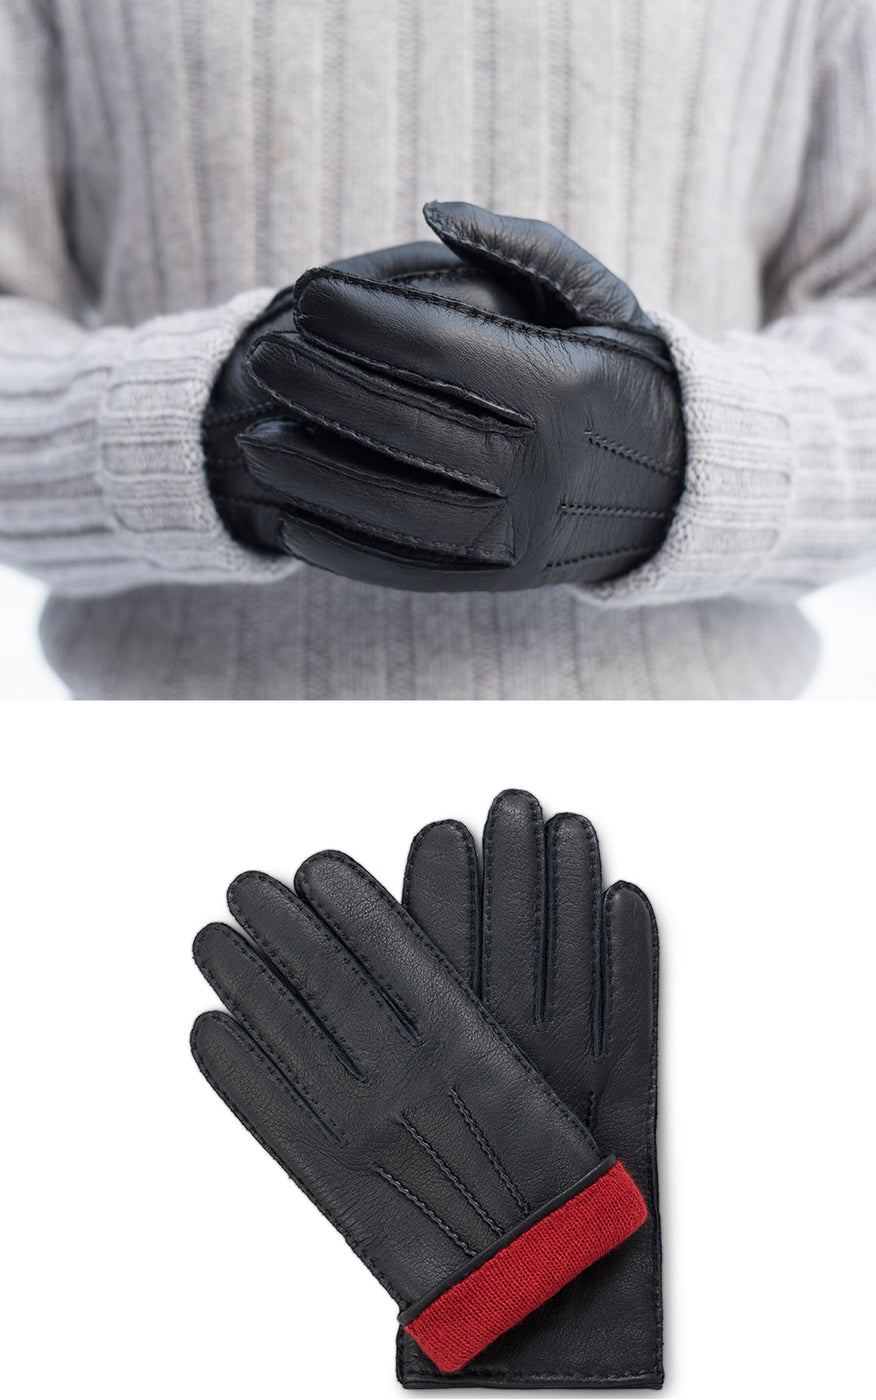 Man in light grey pullover wears black moose leather gloves